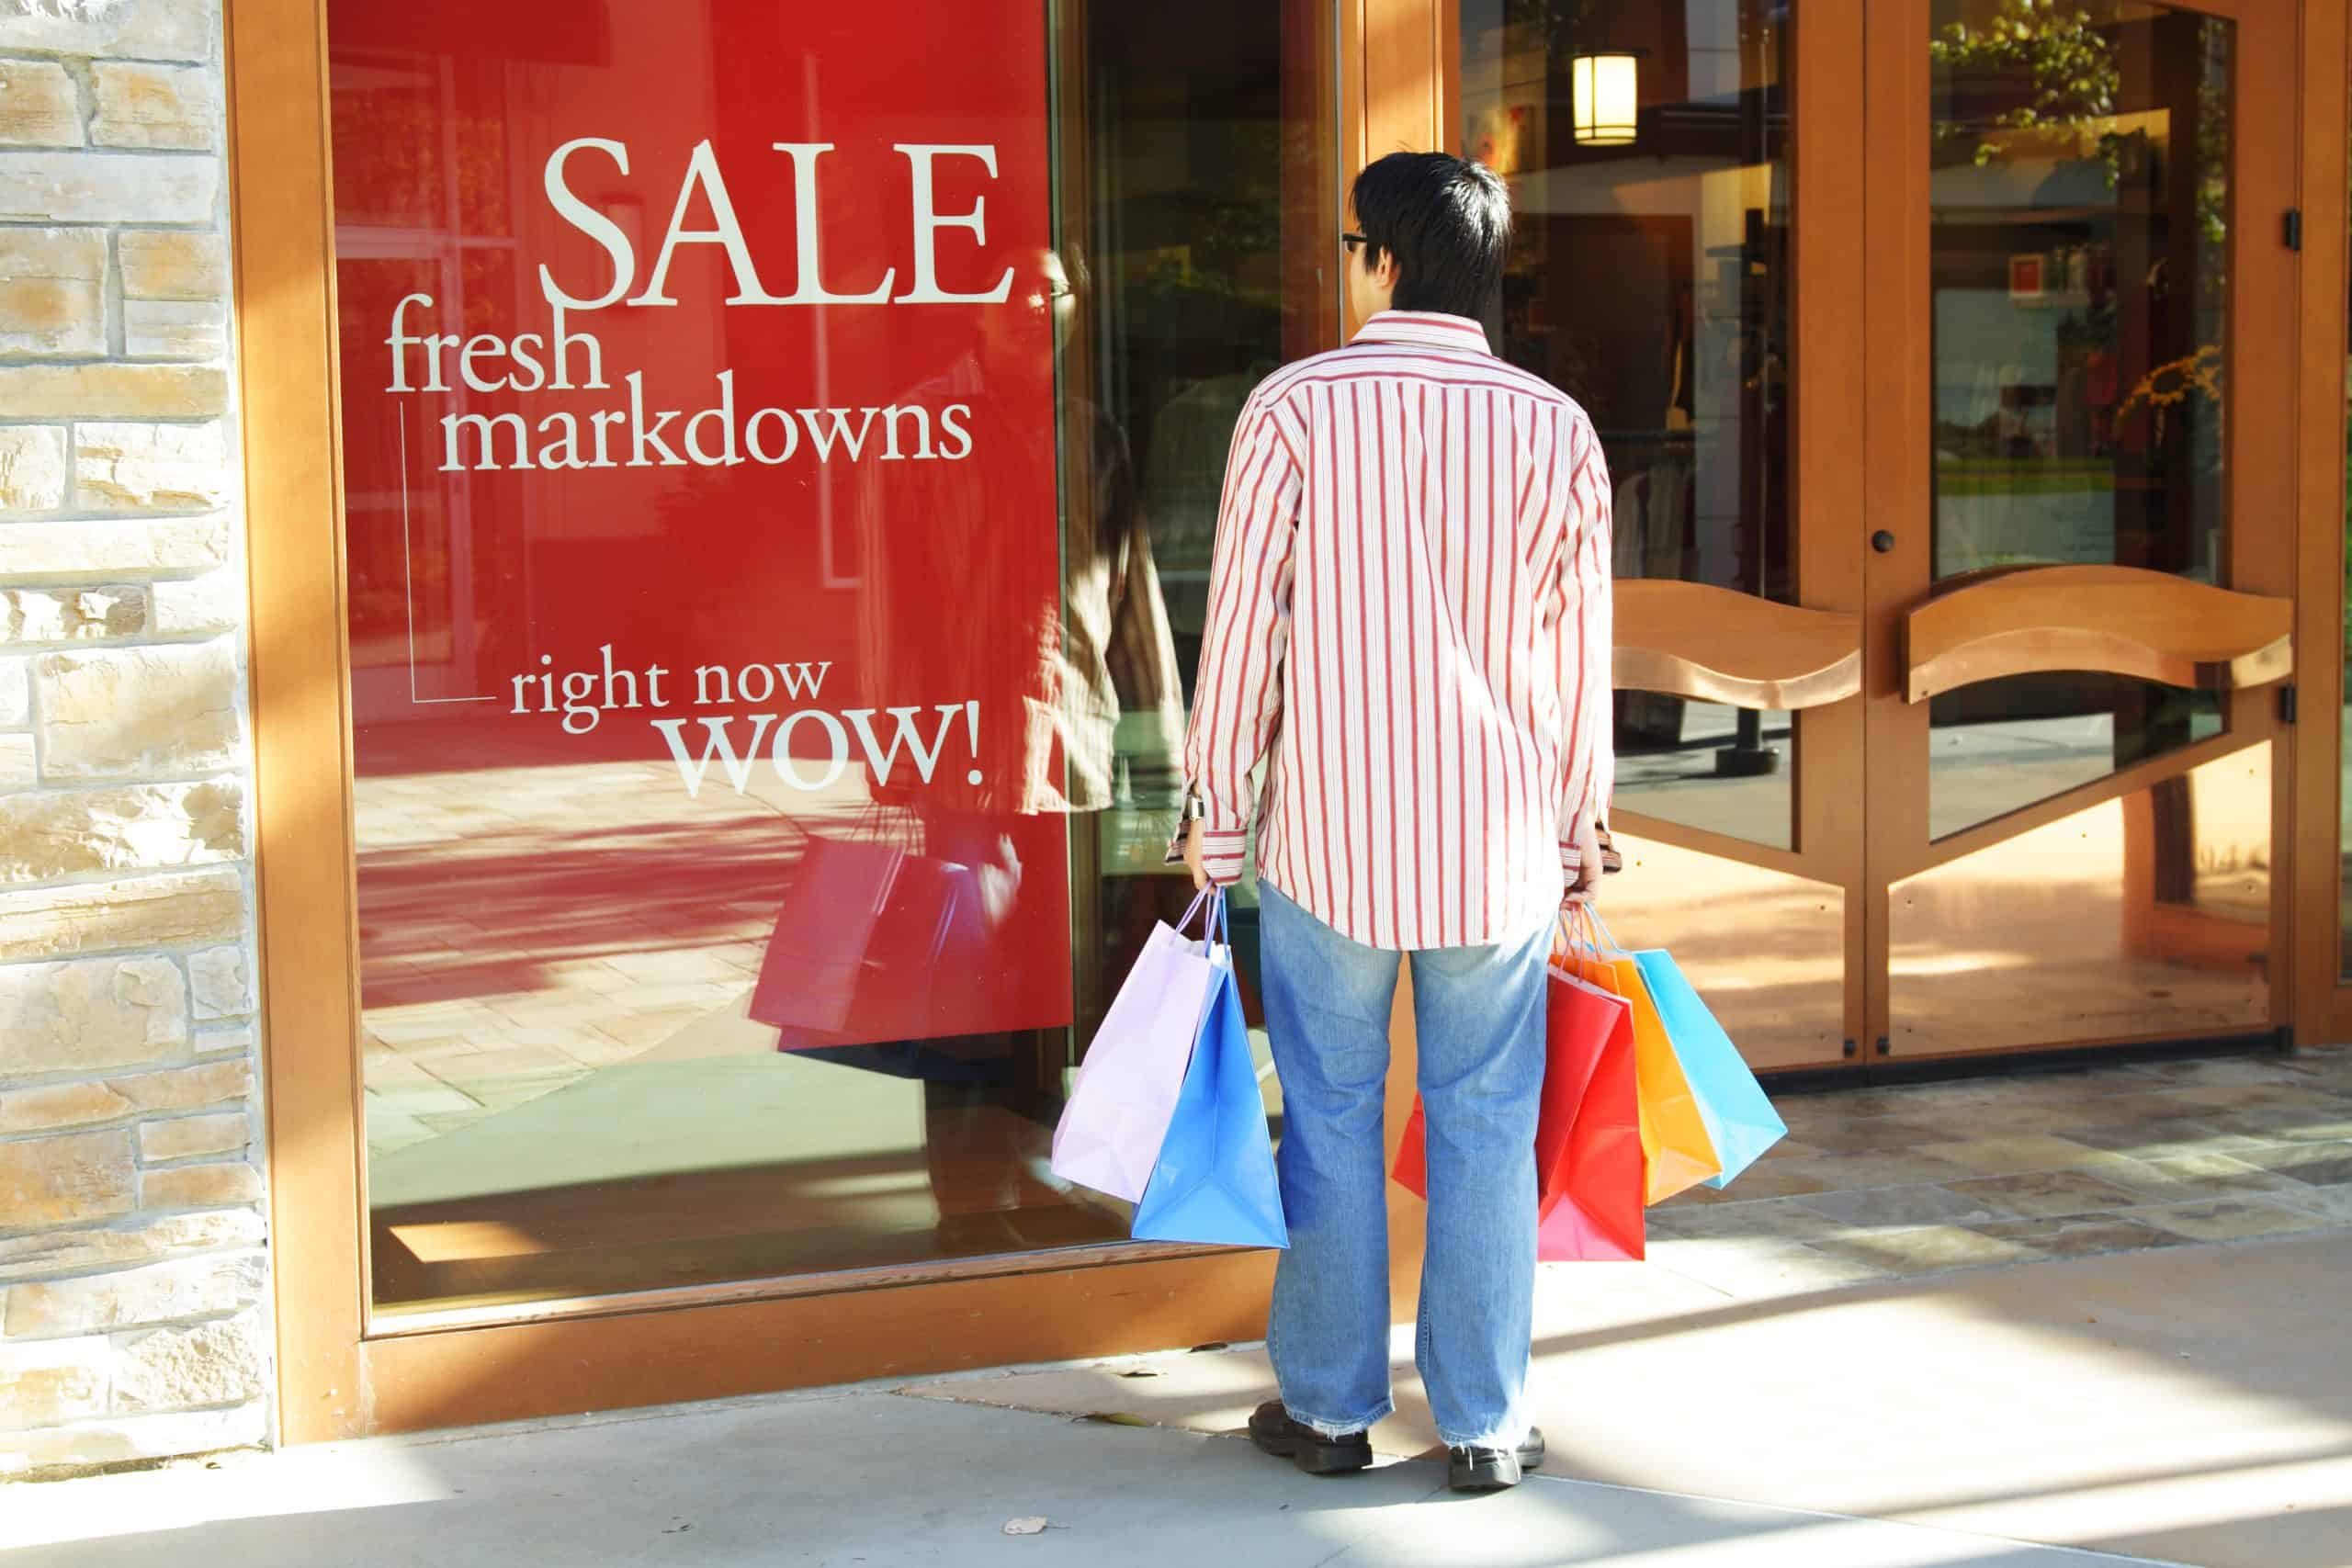 End of quarter bargains - Man with shopping bags looking at store sale sign